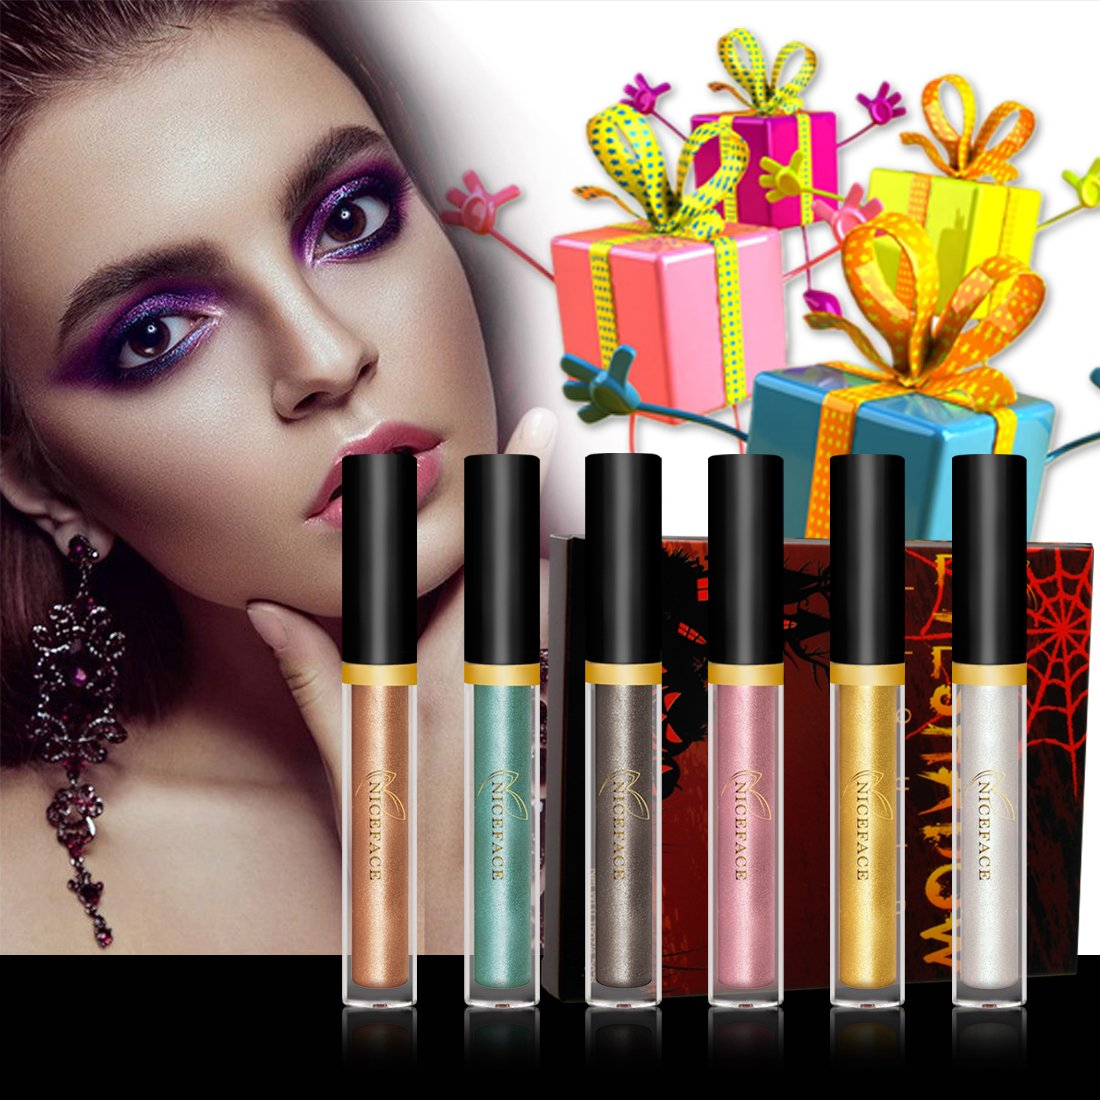 Liquid Eyeshadow - Waterproof Glitter Shimmer Liquid Eyeliner Eyeshadow with 6 Colors